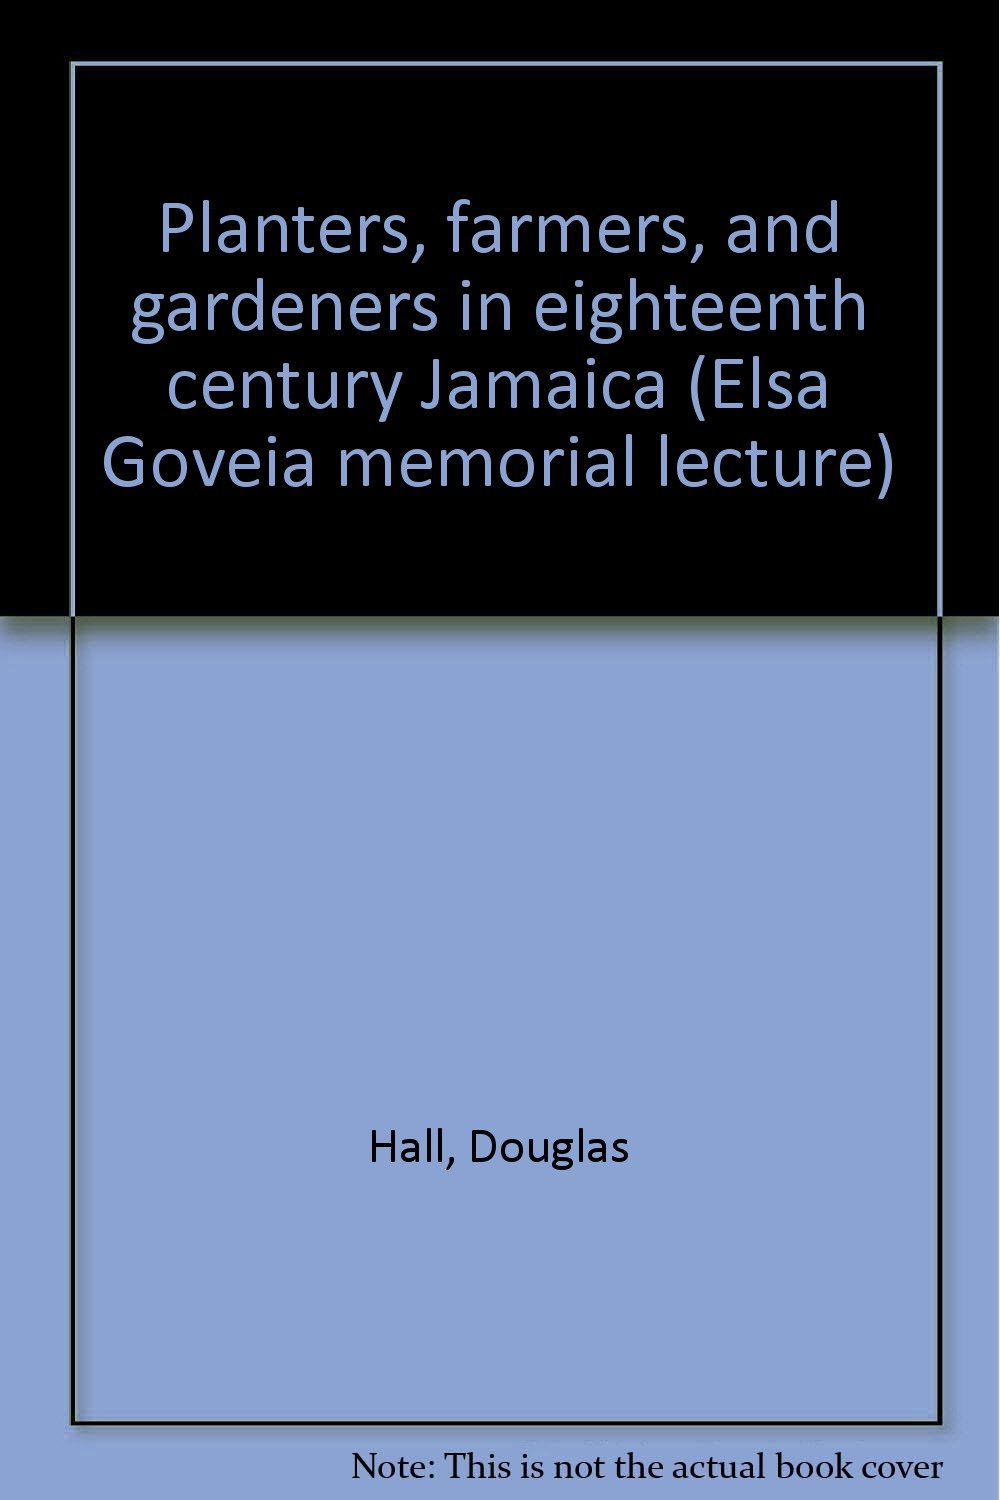 Planters, farmers, and gardeners in eighteenth century Jamaica (Elsa Goveia memorial lecture)